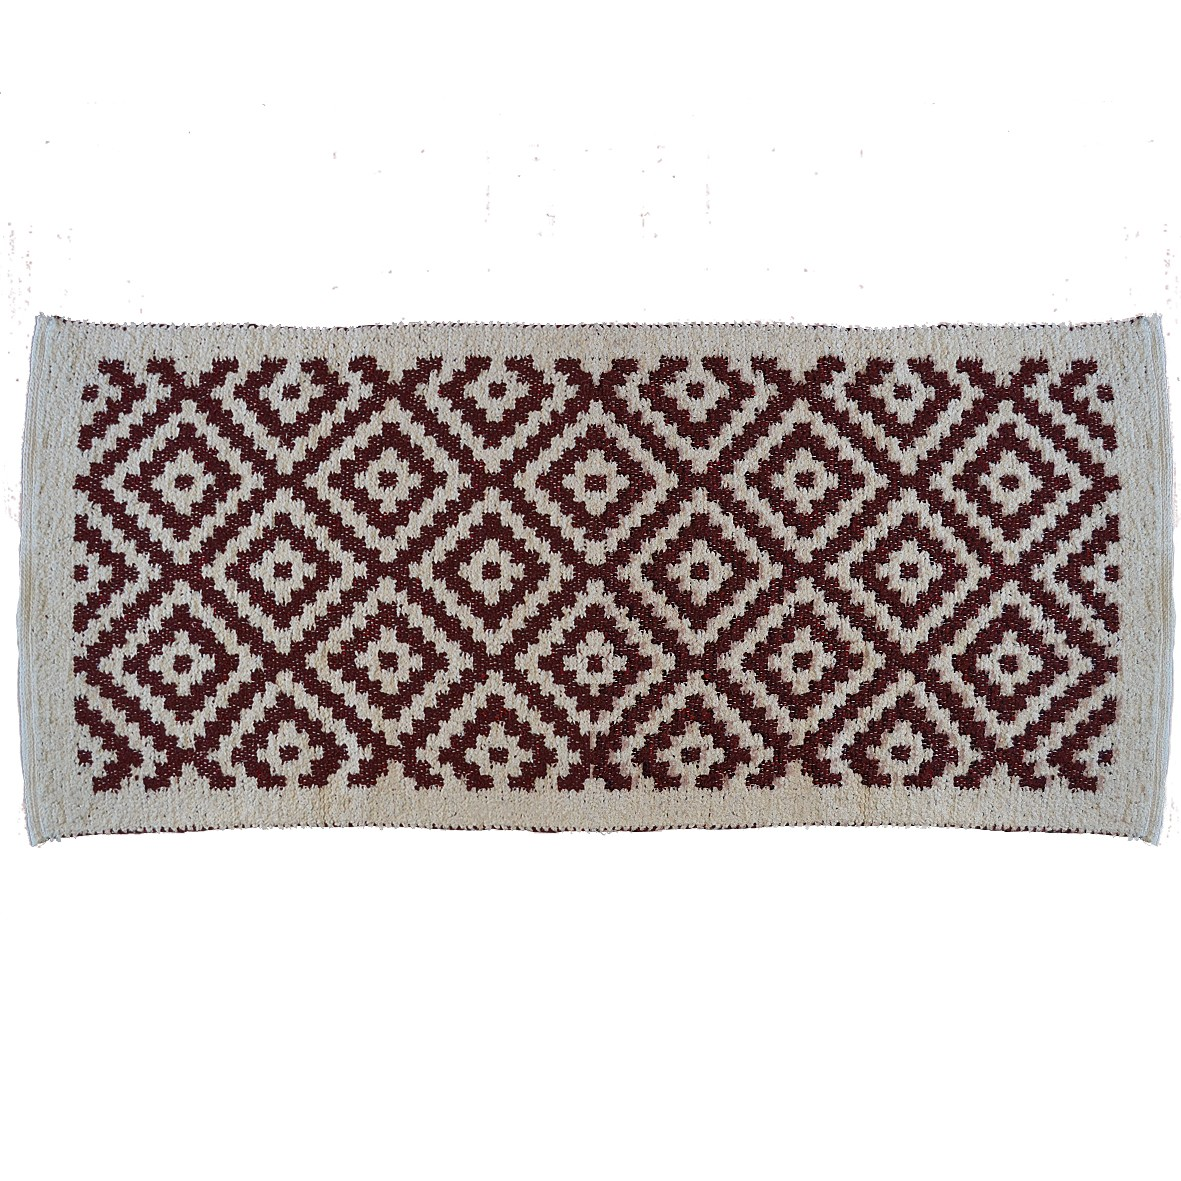 Island, Two Sided Carpet, Burgundy, 65X135